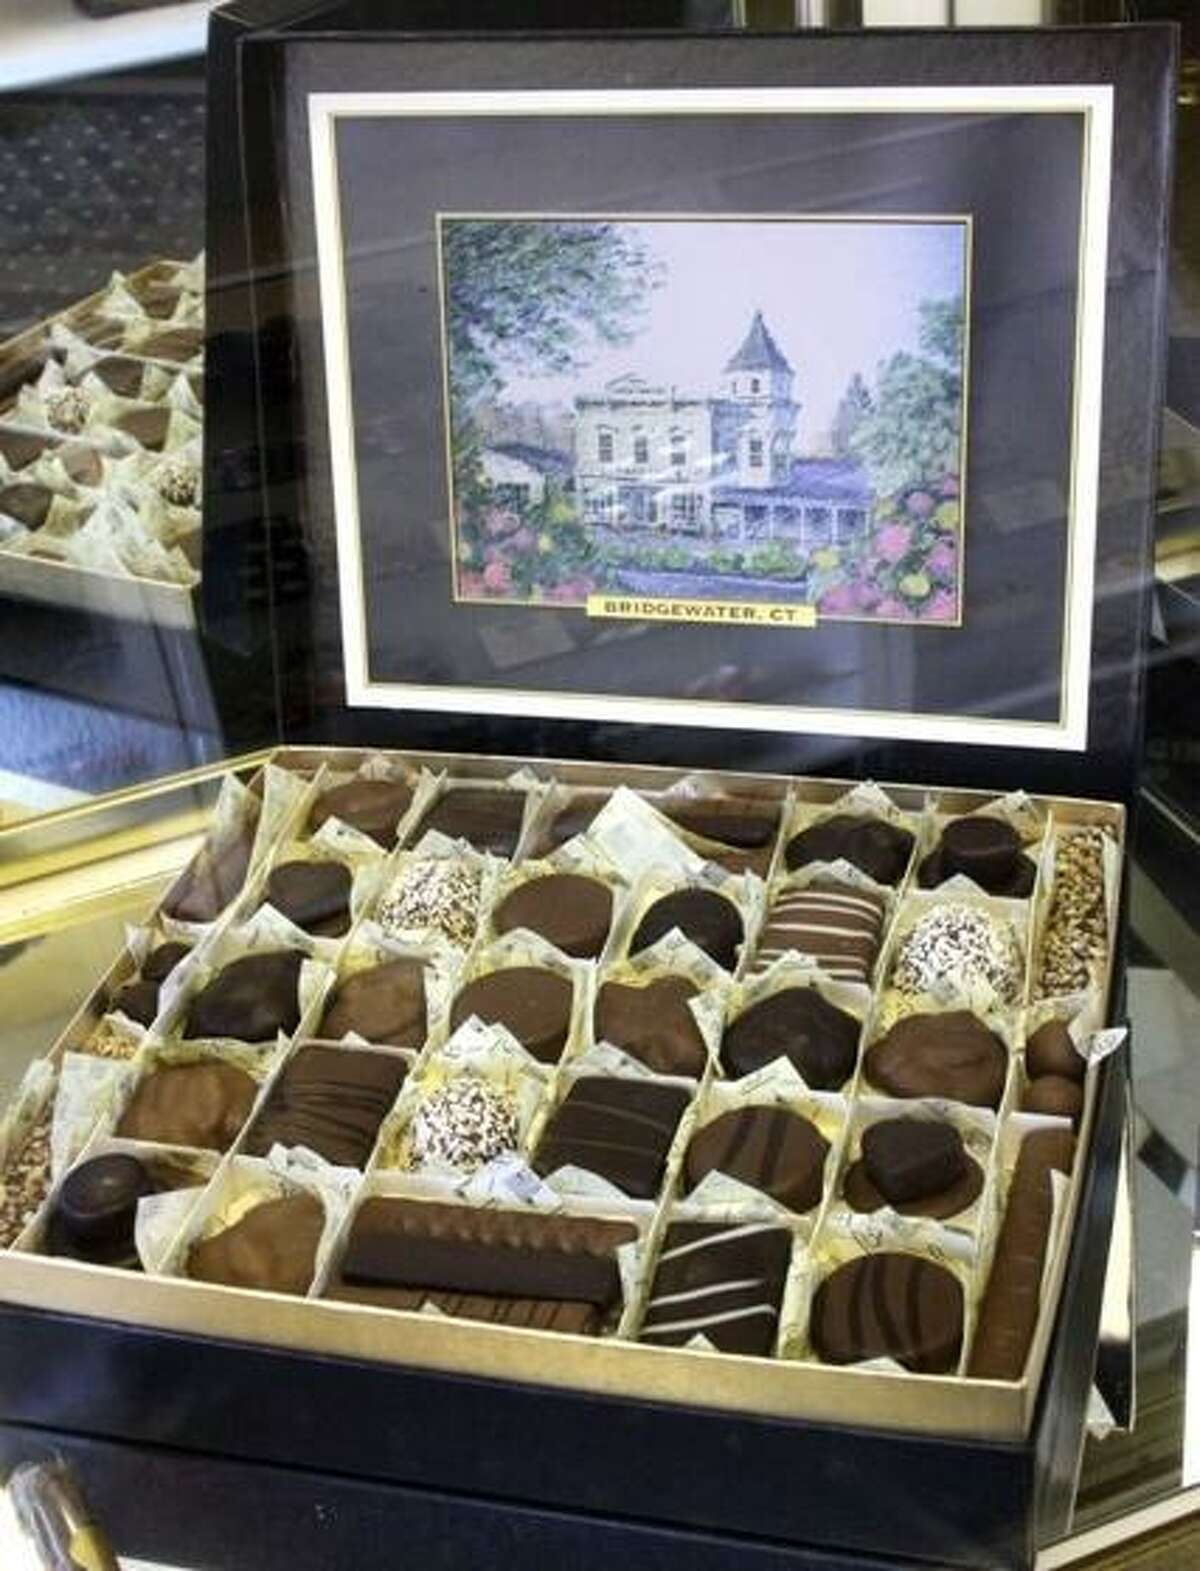 A large gift box of Bridgewater Chocolates features an image of the Bridgewater Village Store, the charming hub of a small town where the business was born. The chocolates are now made in a headquarters in Brookfield.